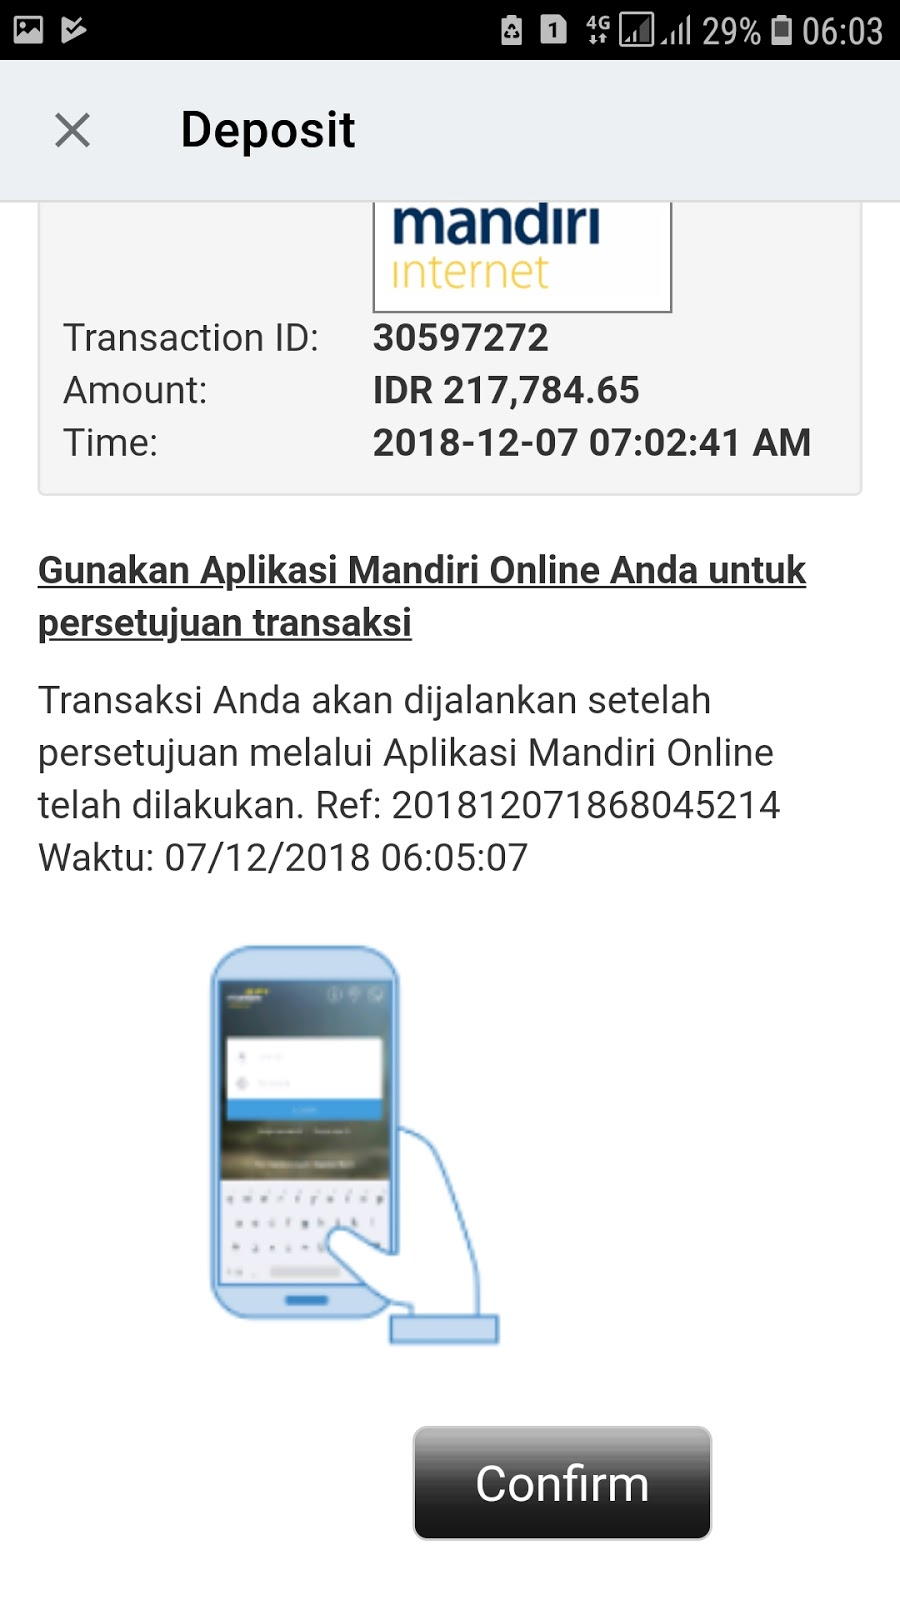 Manual Lengkap Metode Withdraw dan Deposit Uang di IQ Option Indonesia